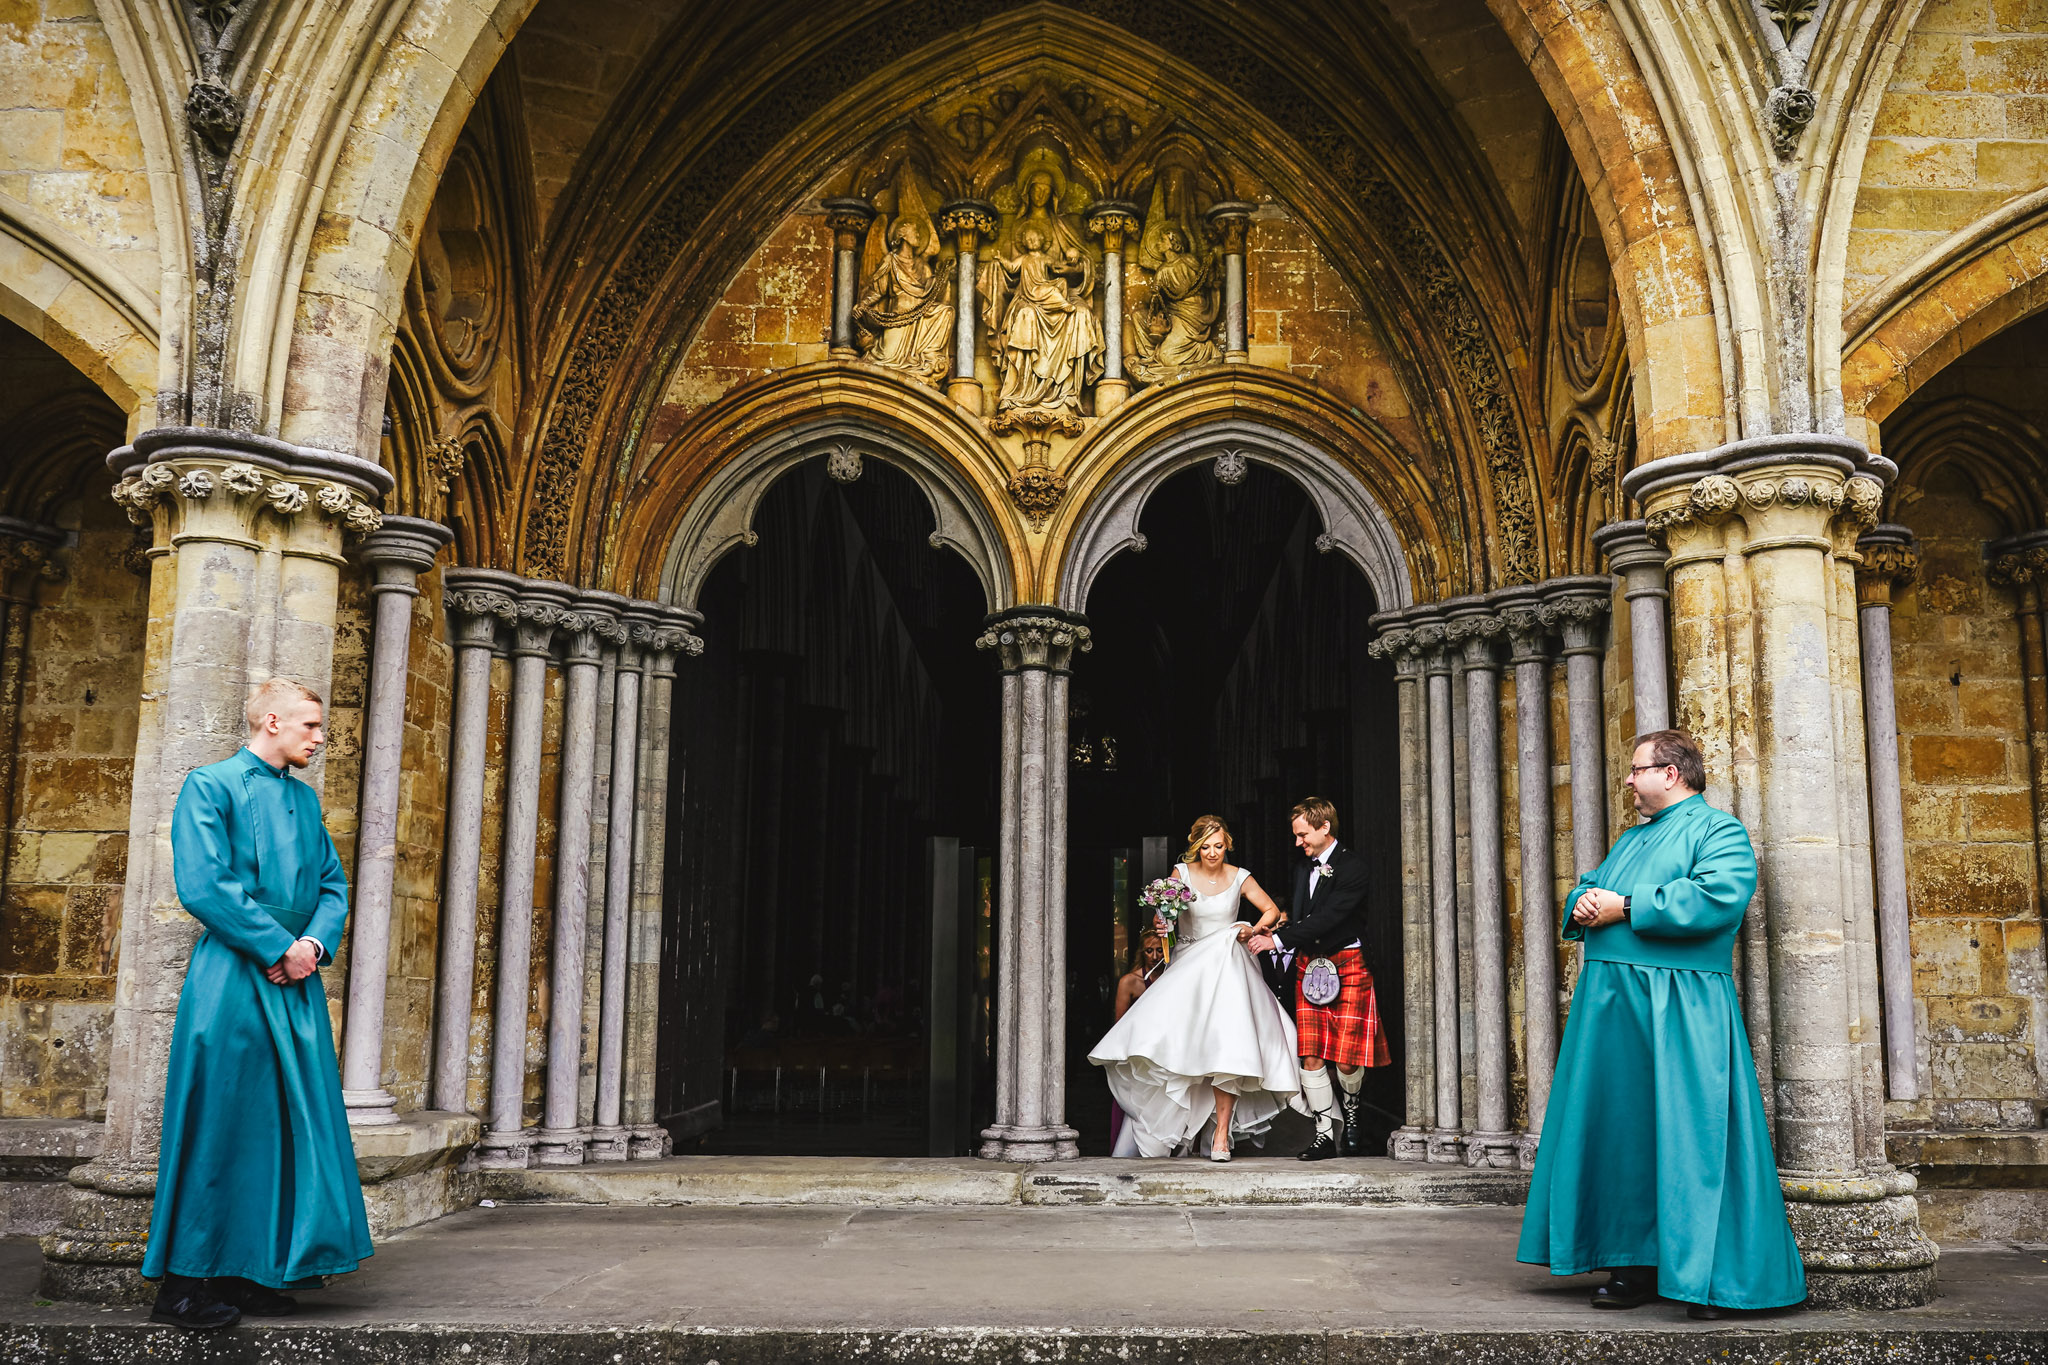 Scottish bride and groom exiting church - photo by Andrew Billington Photography